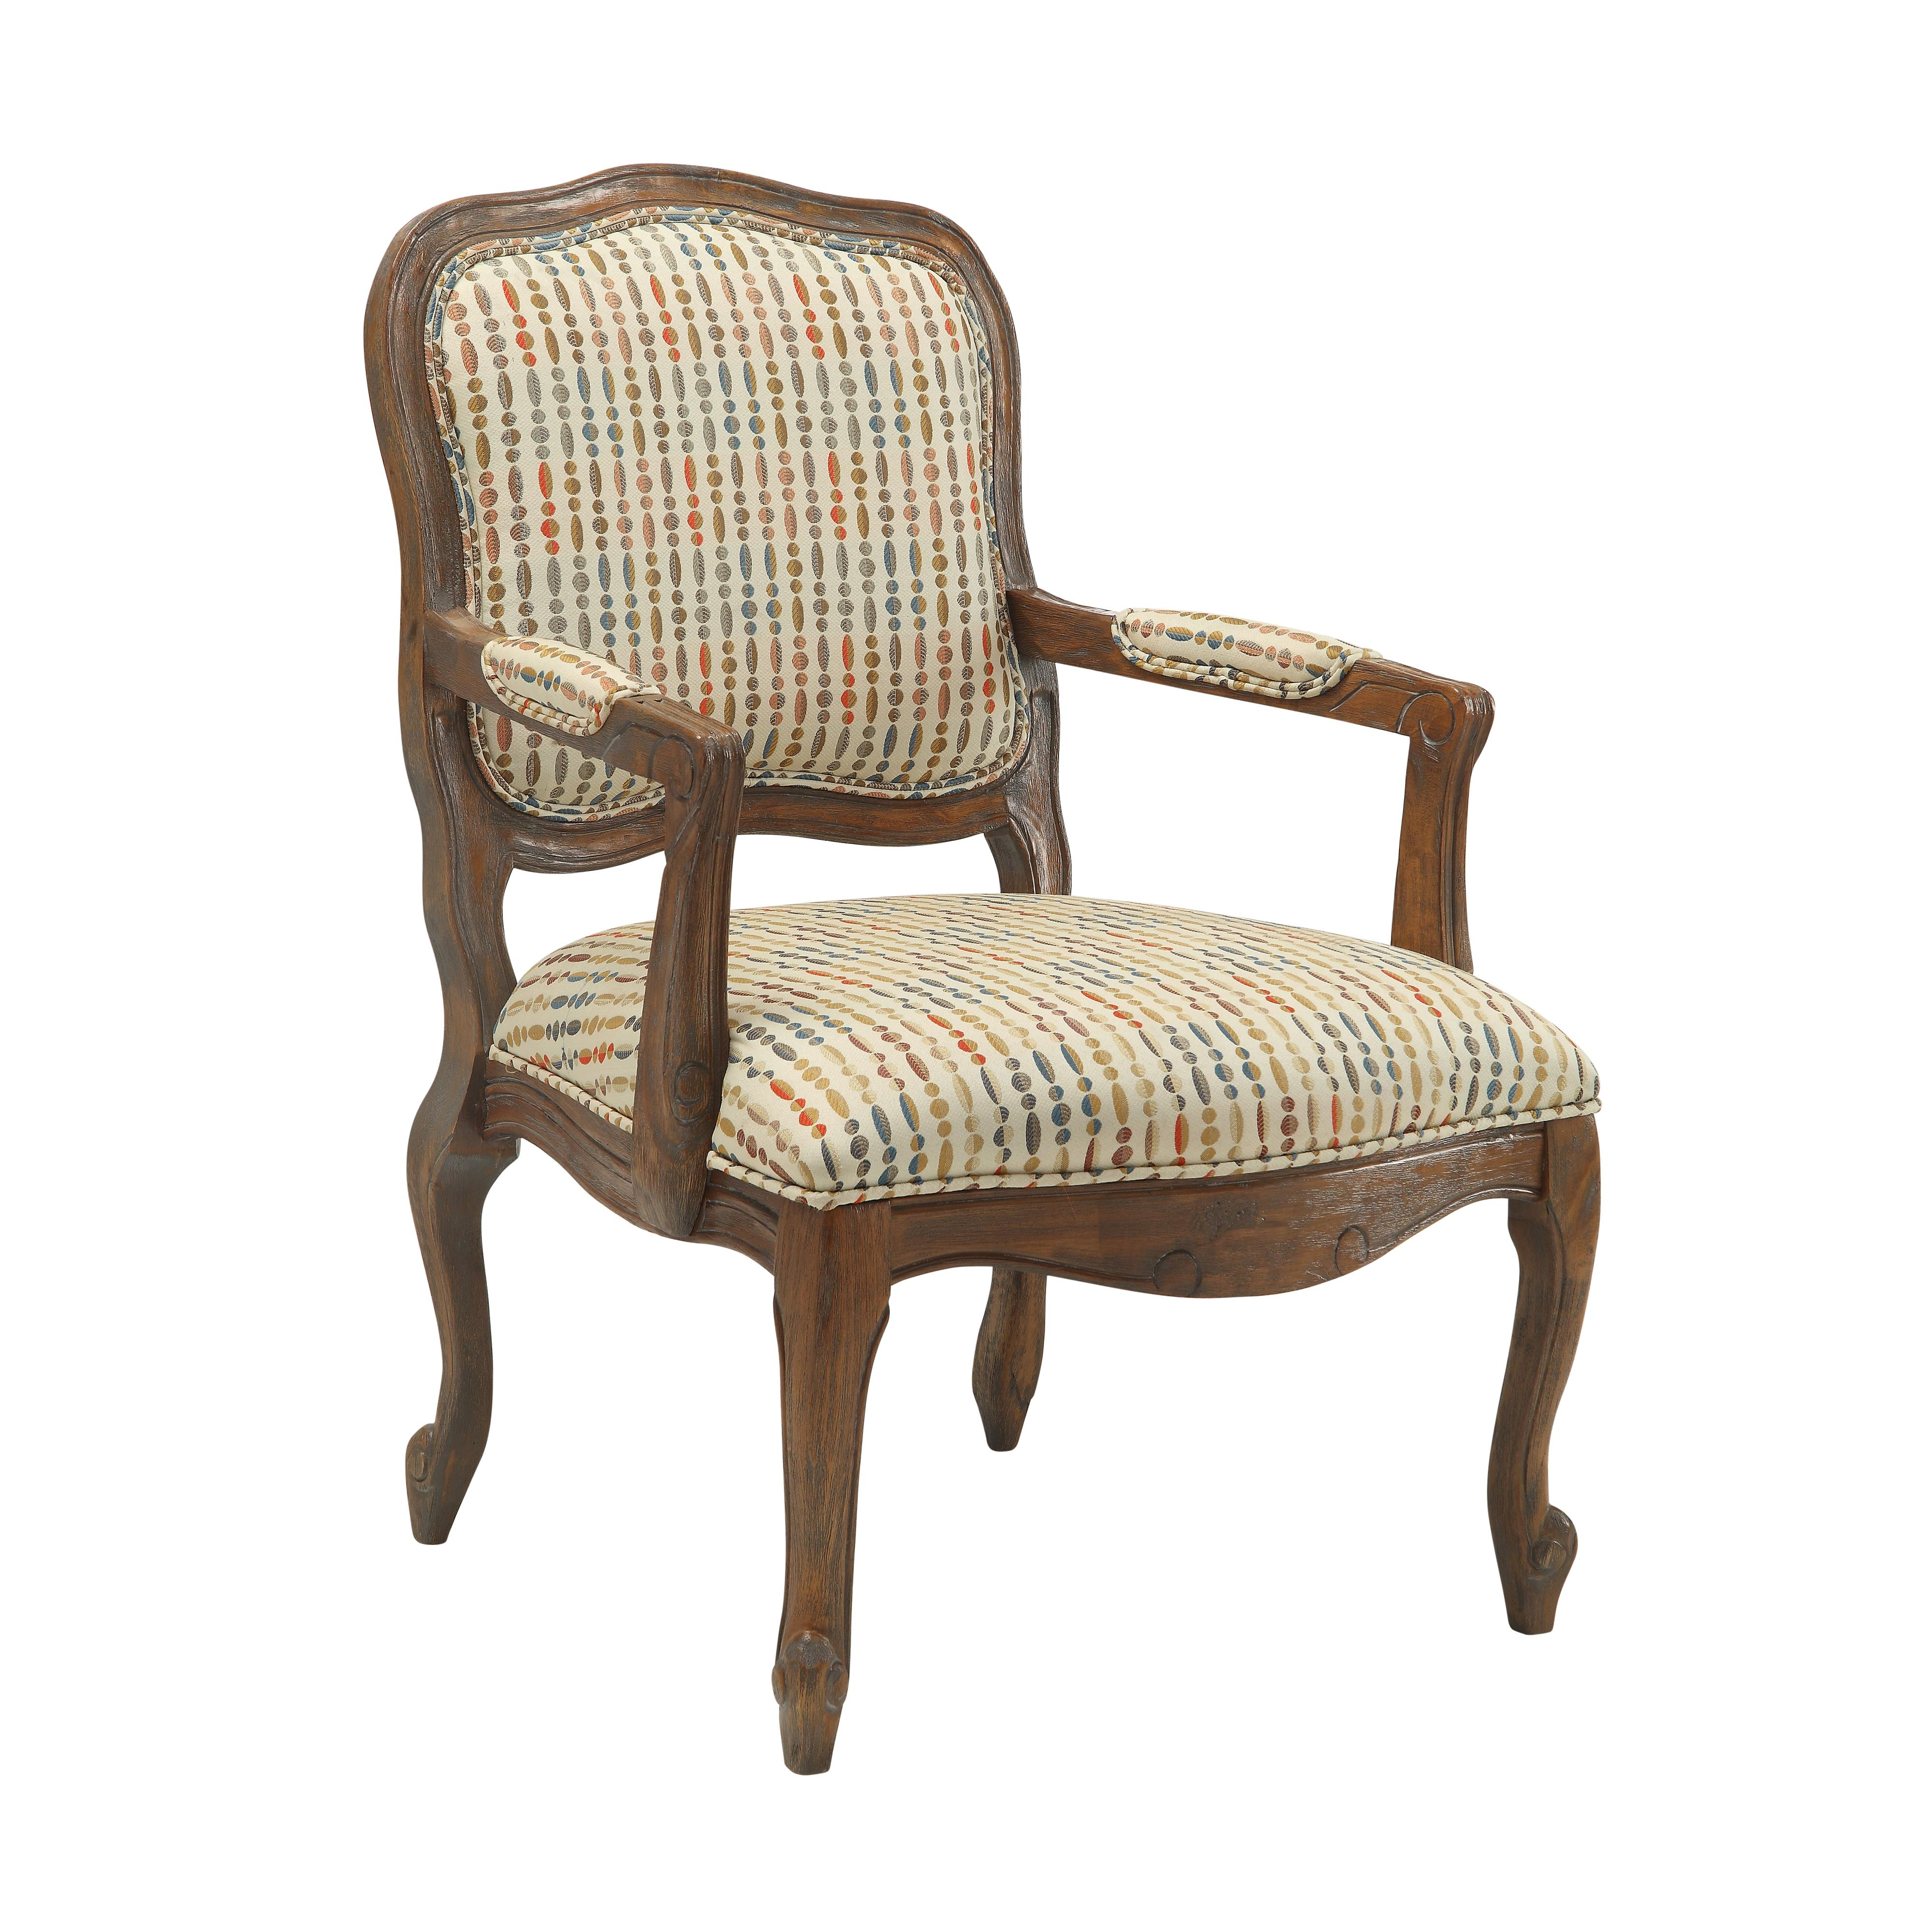 Coast to Coast Imports Coast to Coast Accents Accent Chair - Item Number: 70730